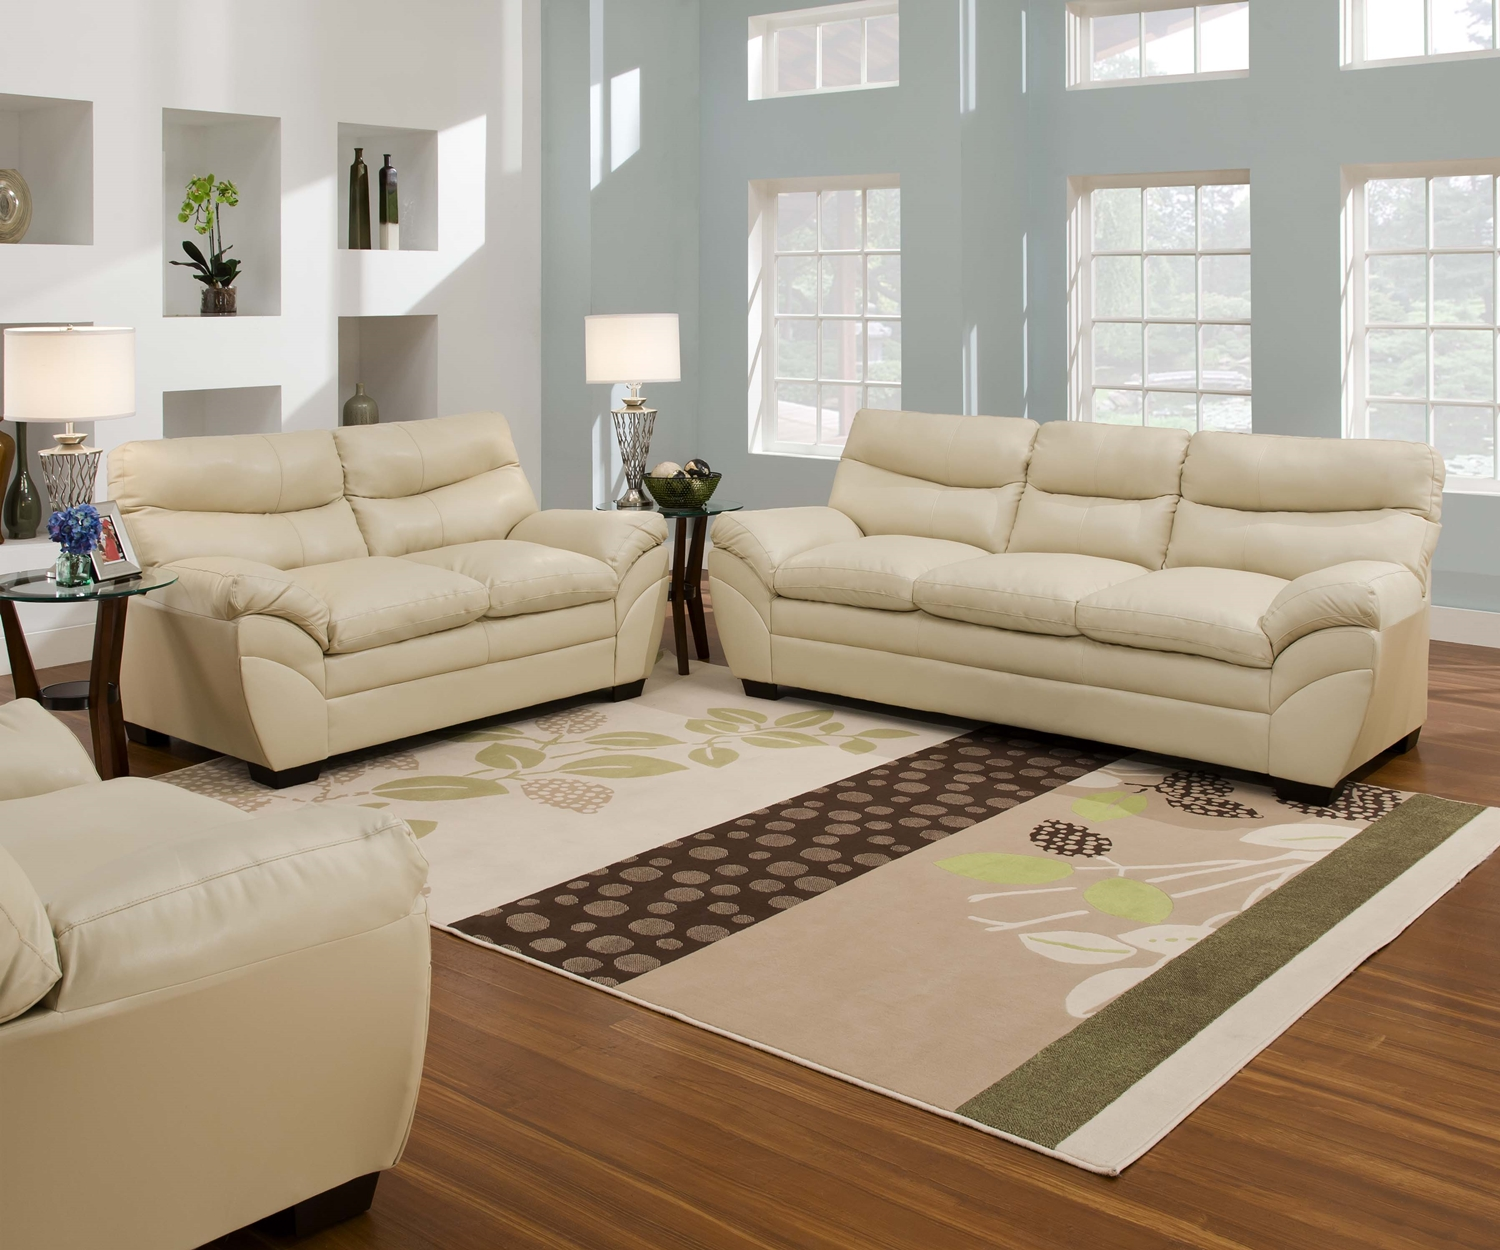 Cream living room furniture modern house for Living room furnishings